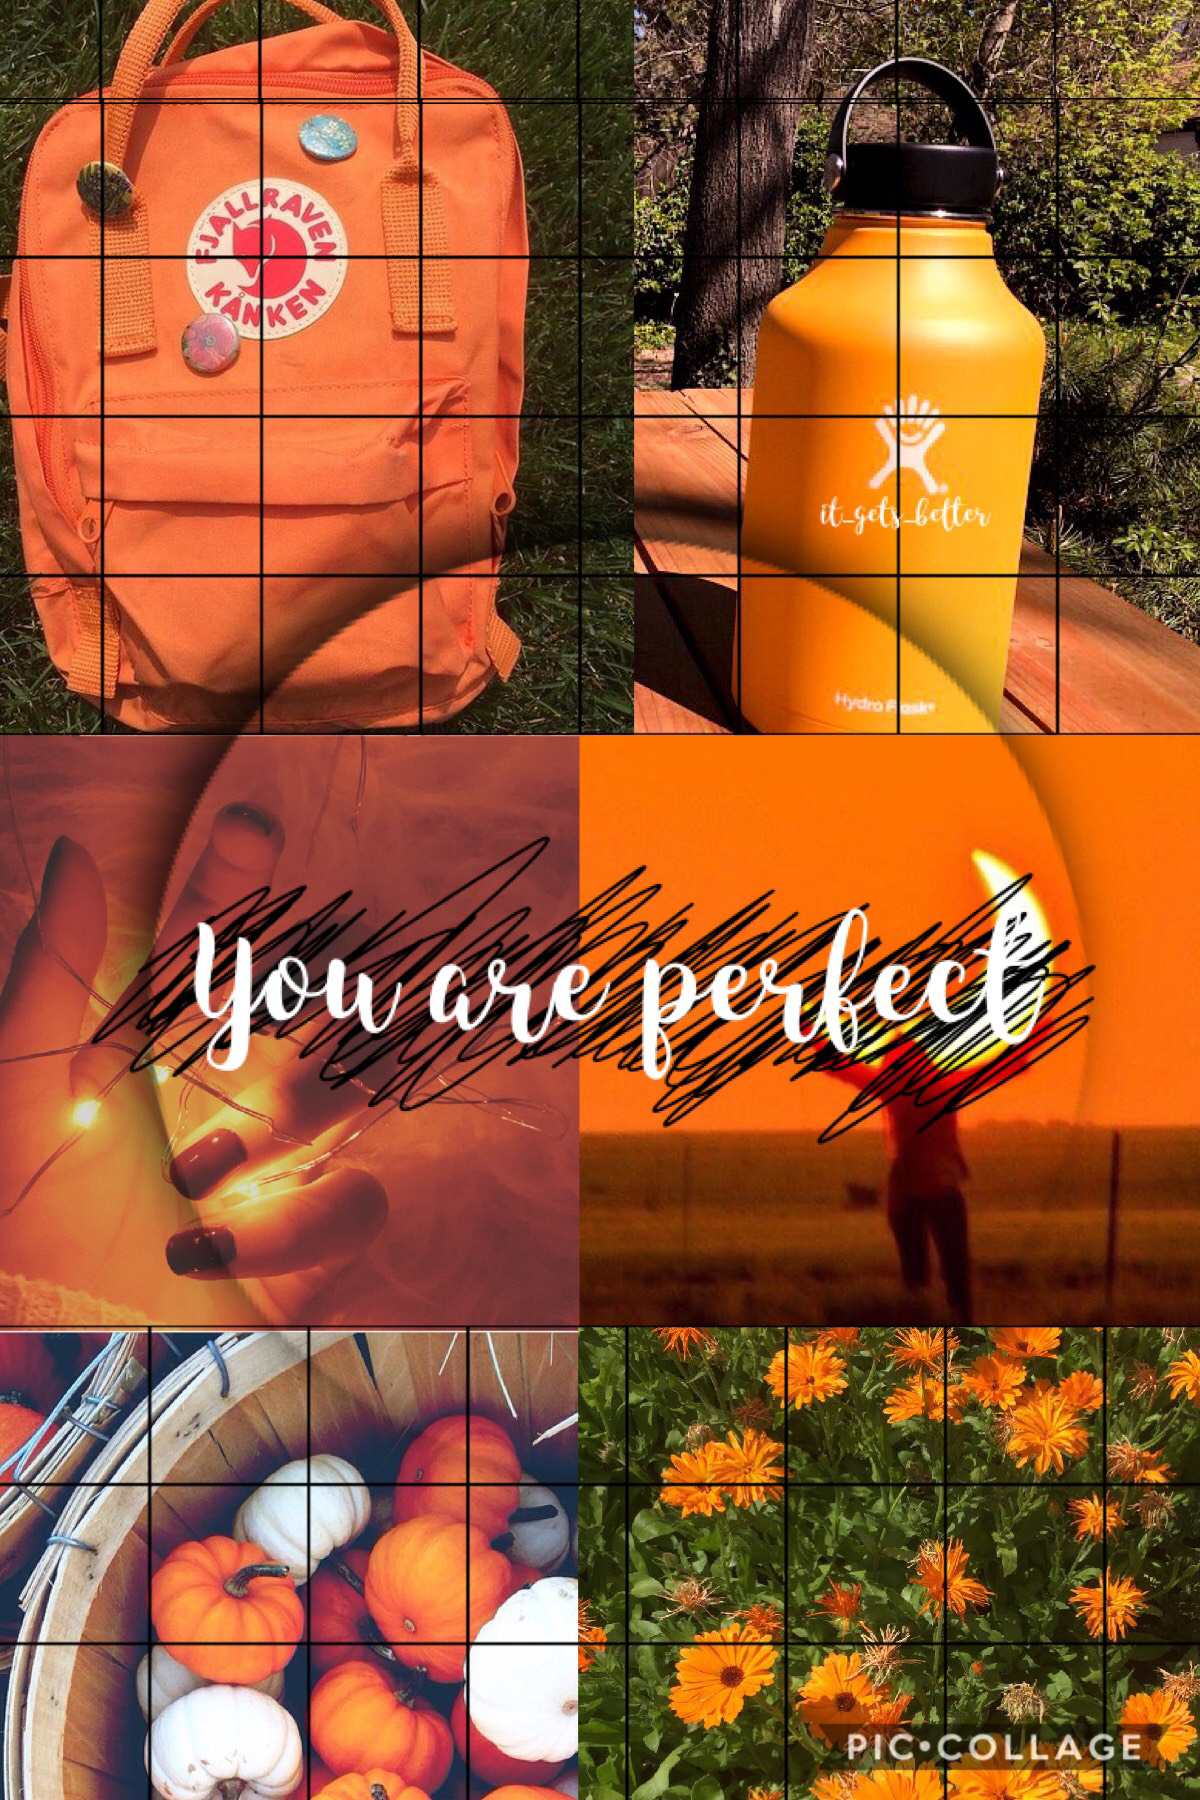 tap—-> 🎃 It's true, you are perfect.💛 I love you. Have a wonderful day, night, or whatever it may be.